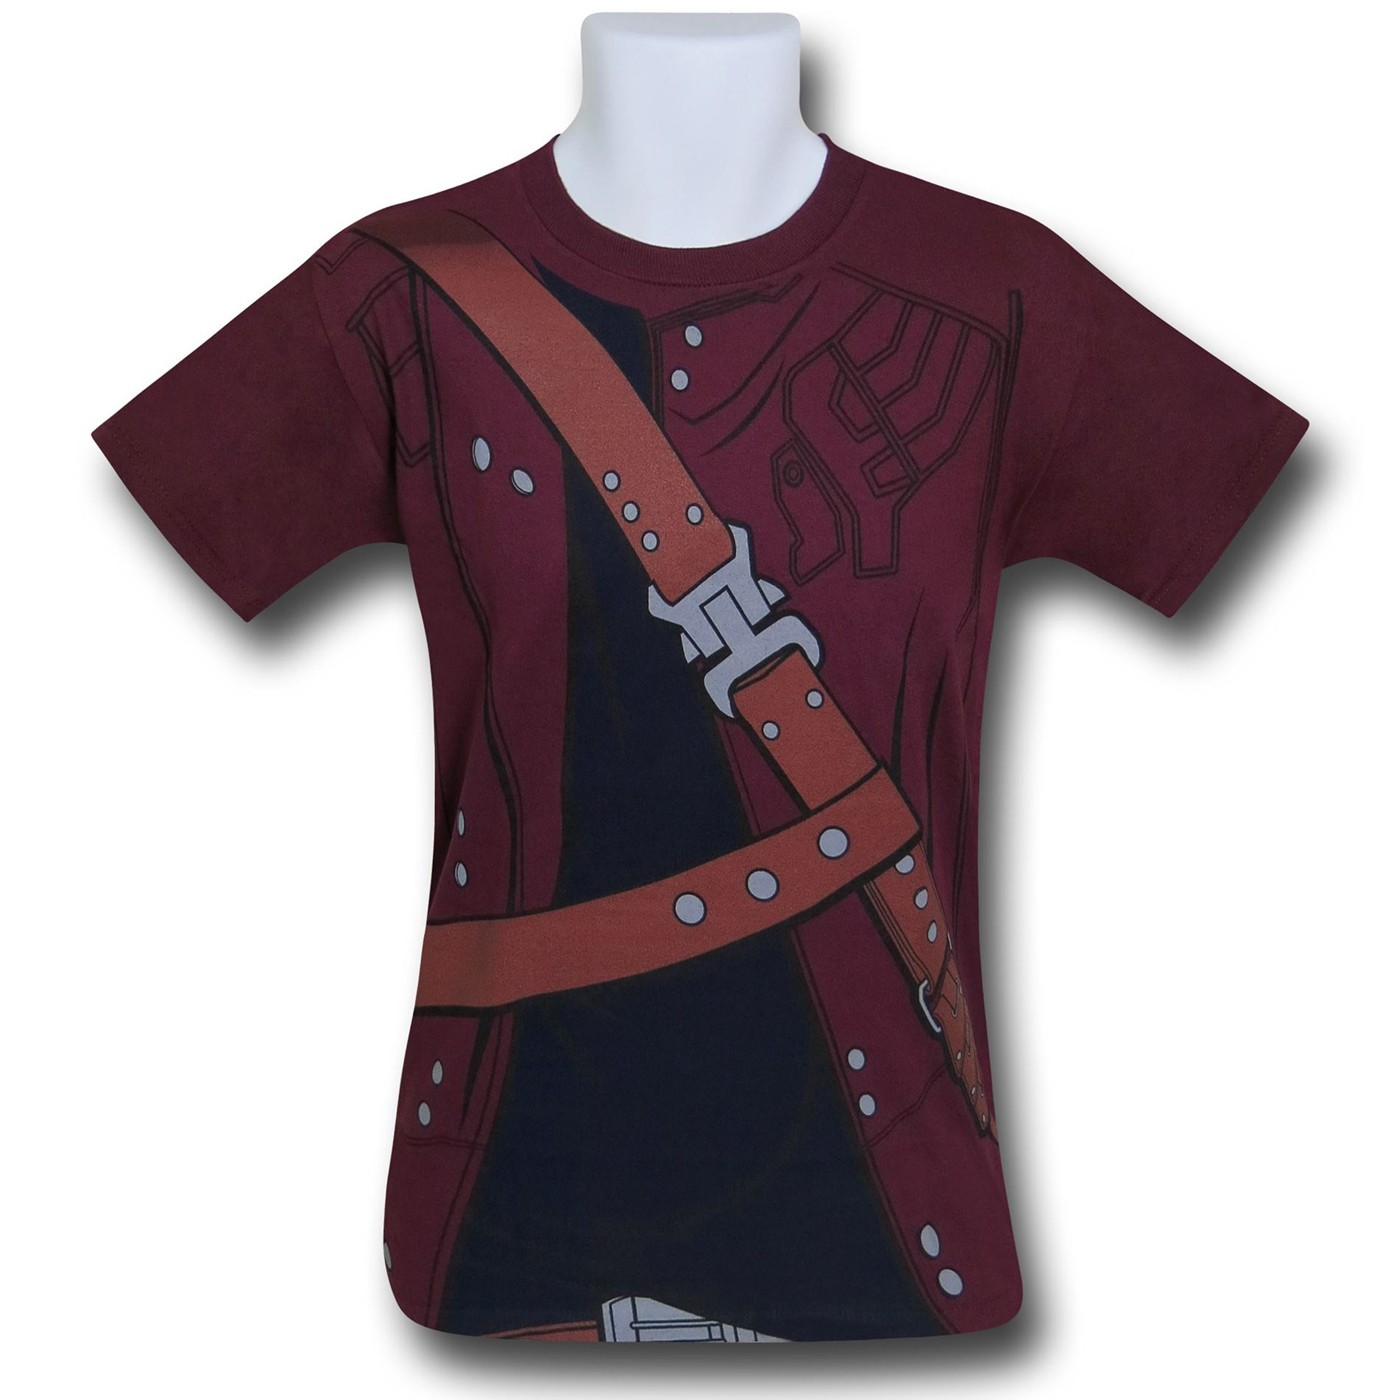 Guardians of the Galaxy Star Lord Costume T-Shirt